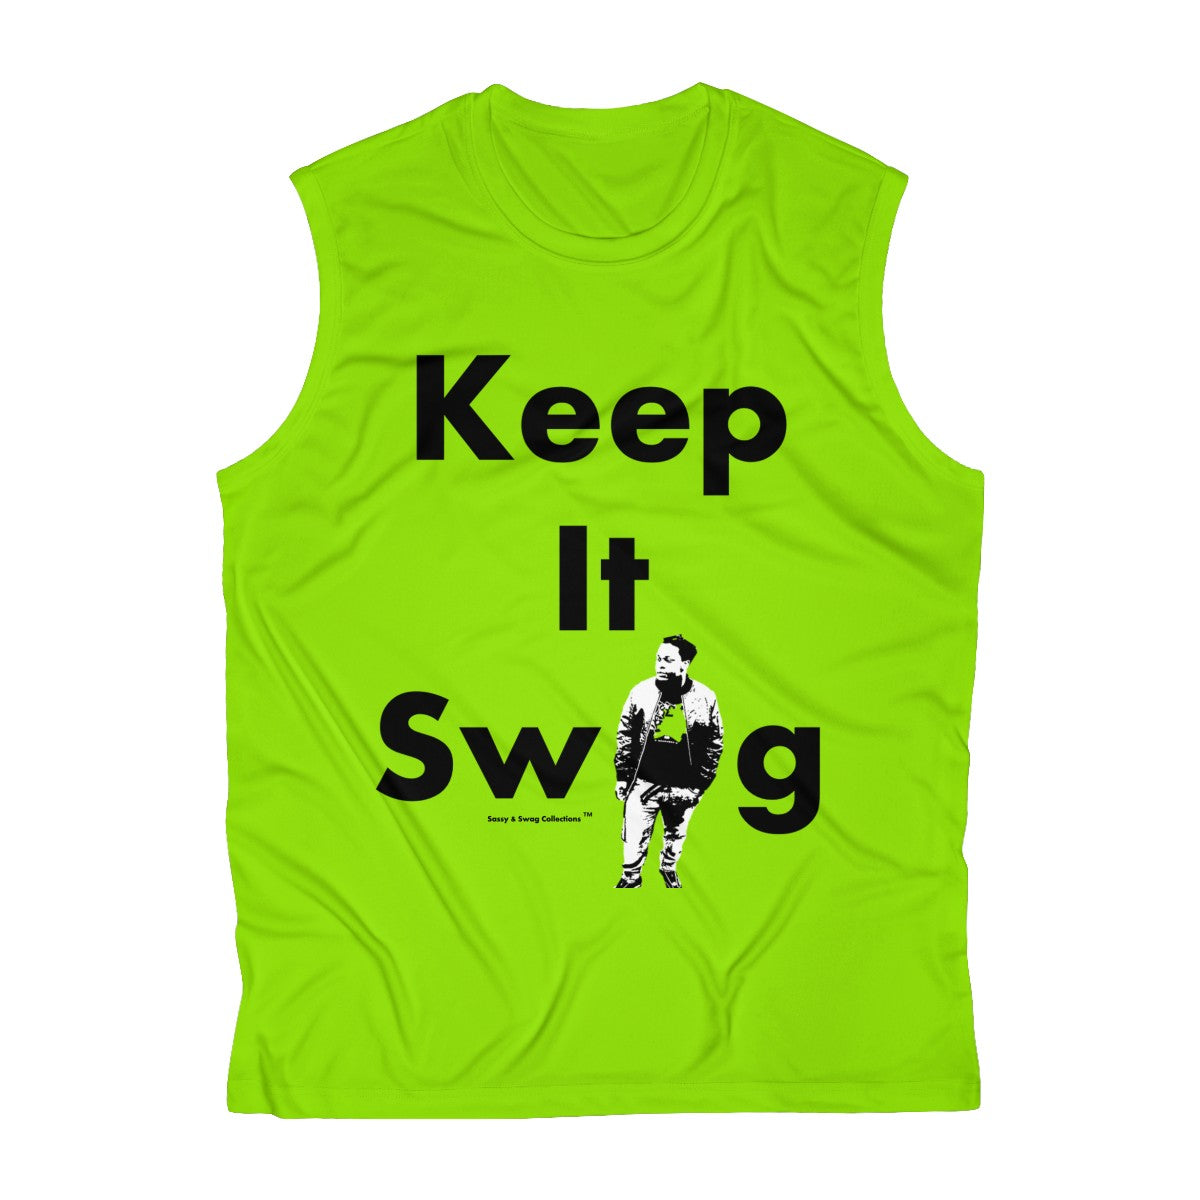 Sassy & Swag Collections - King of Swag-ville Men's Sleeveless Performance Tee